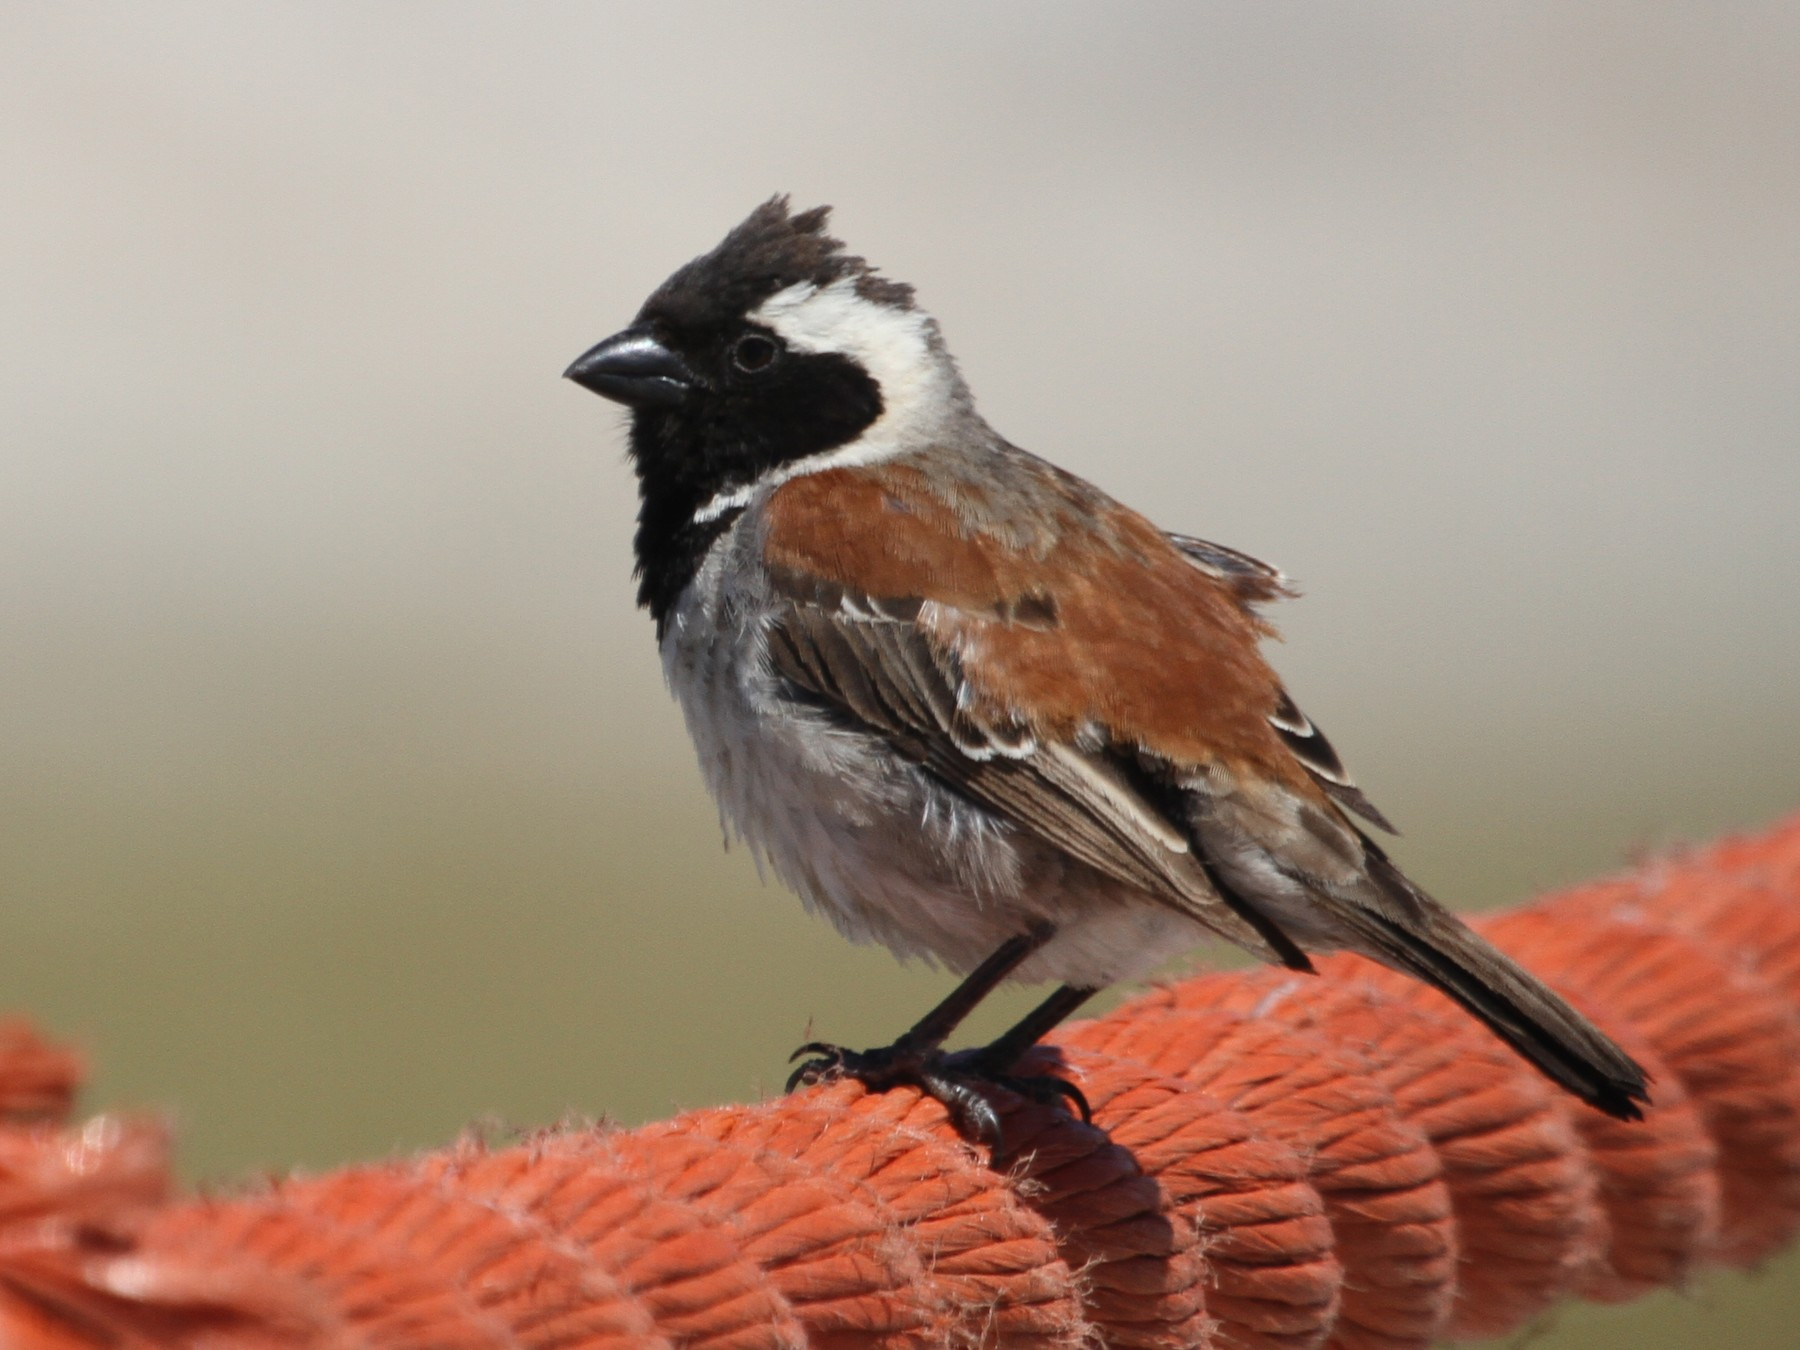 Cape Sparrow - Will Sweet